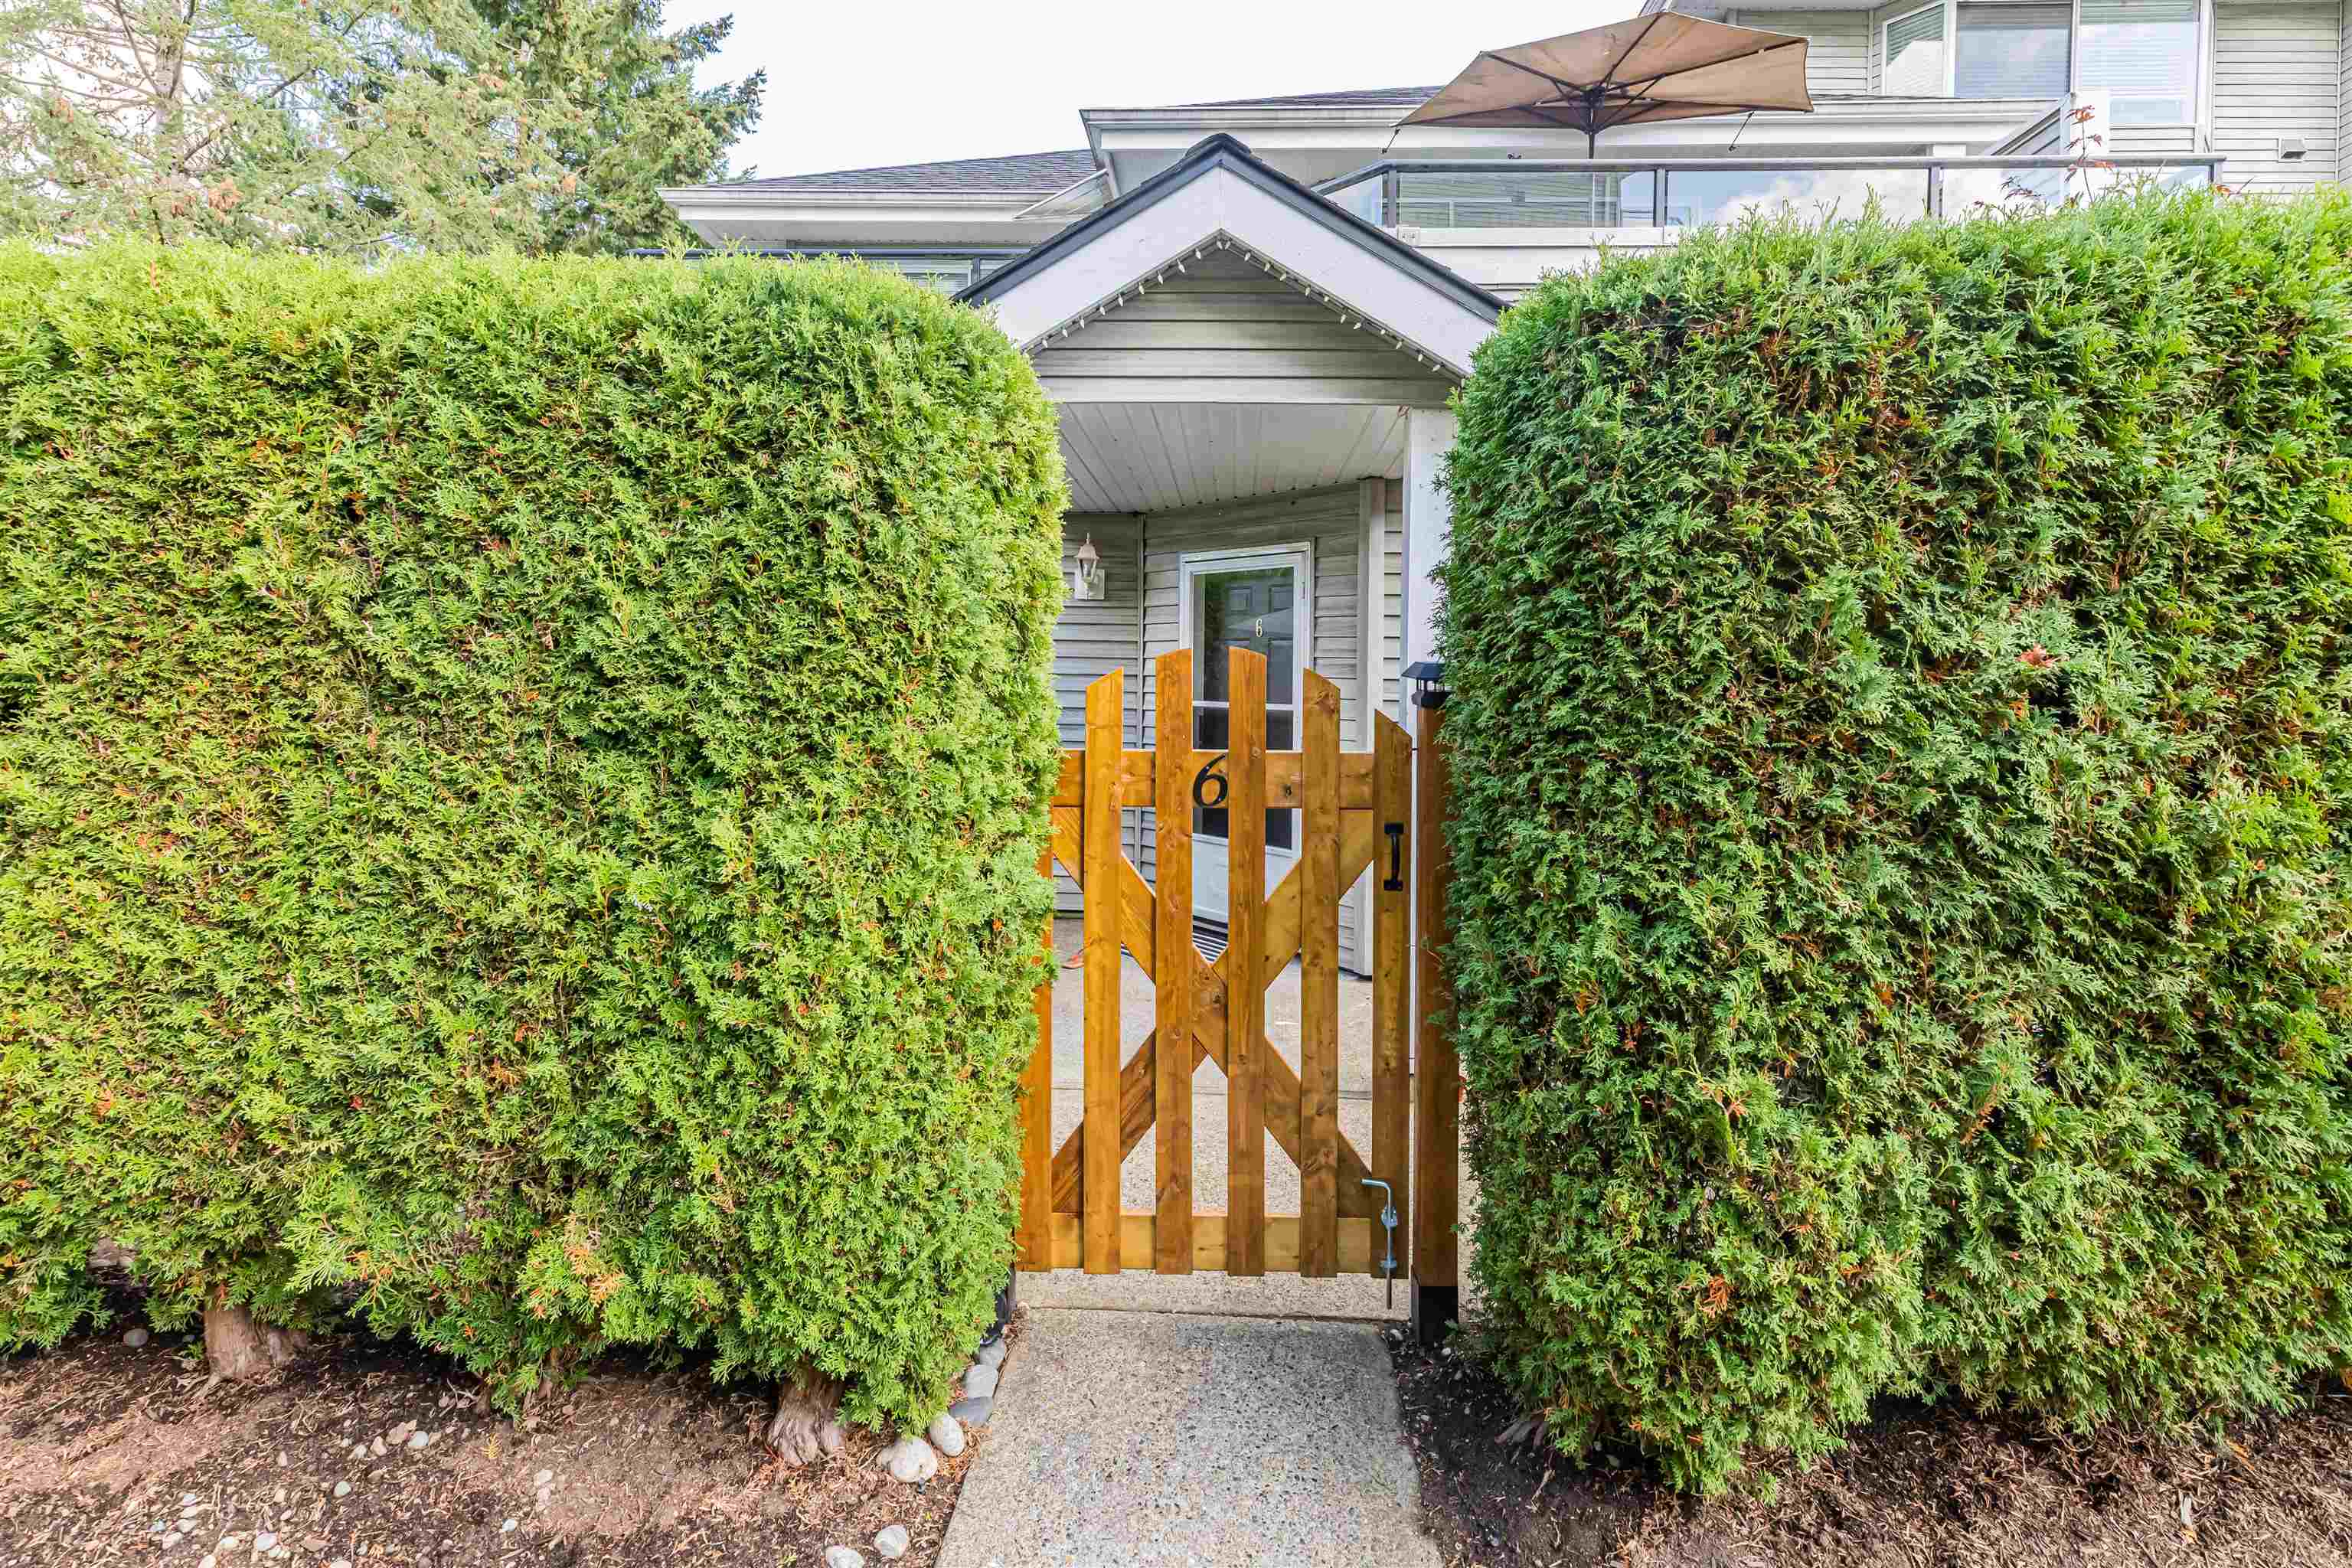 6 13670 84 AVENUE - Bear Creek Green Timbers Townhouse for sale, 2 Bedrooms (R2625536) - #25